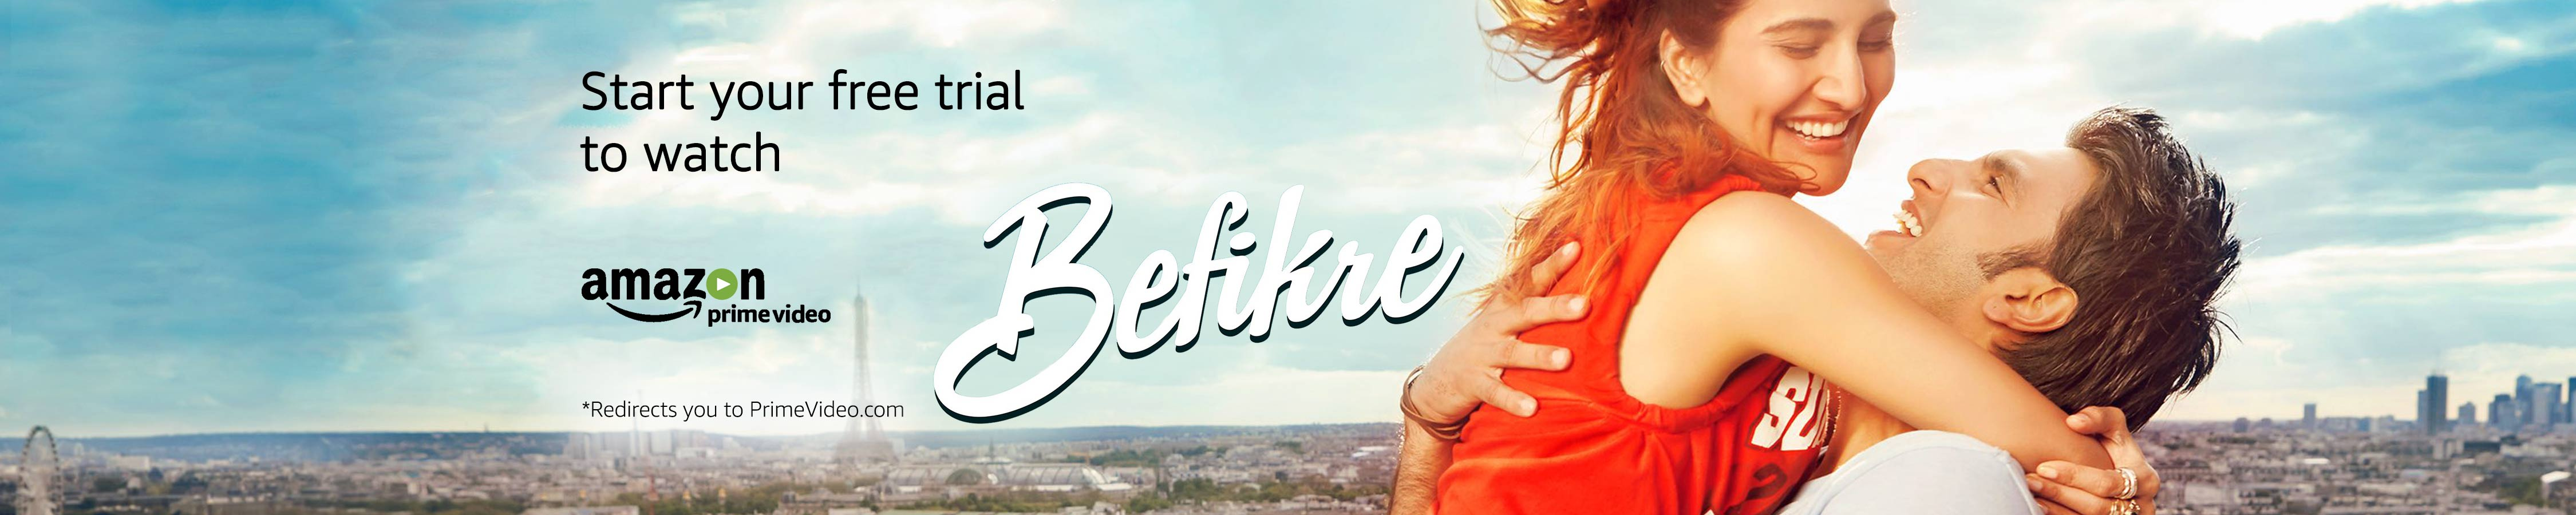 Start your free trail to watch Befikre at Amazon Prime Video